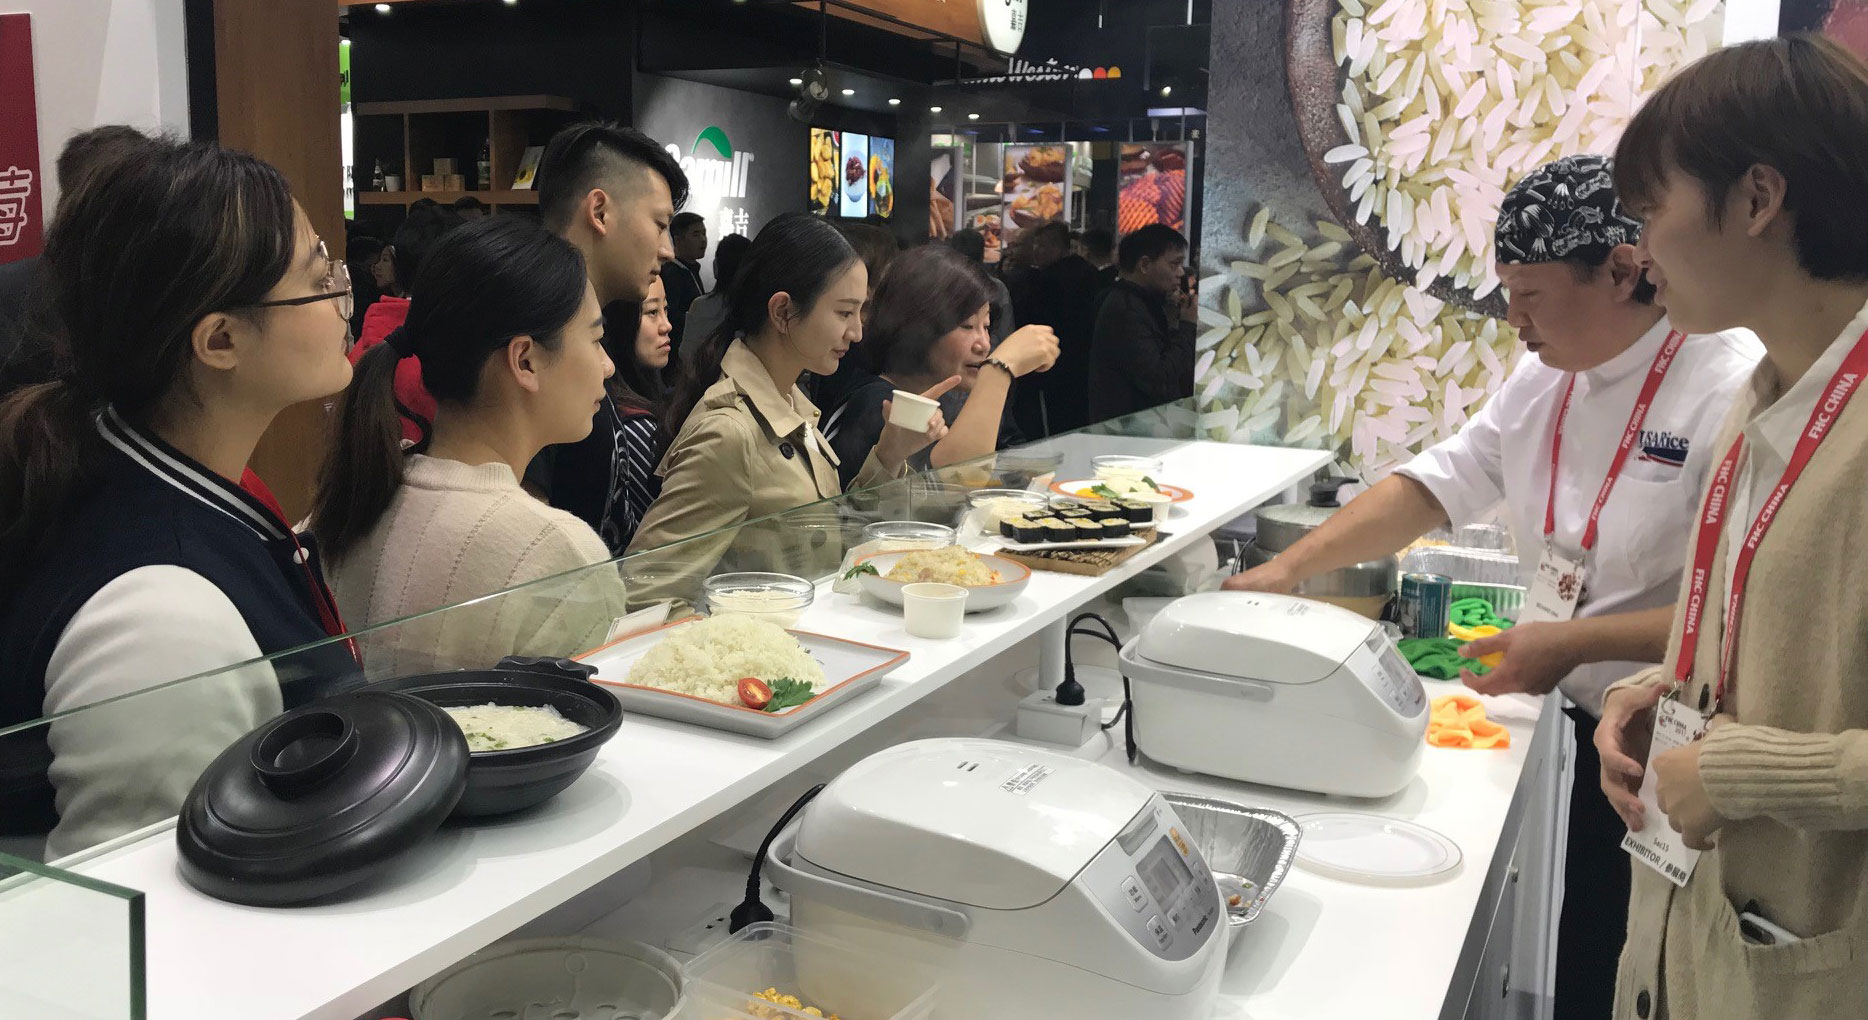 2017 FHC-Food-Show-in-Shanghai, chef rolling sushi with customers looking over booth counter